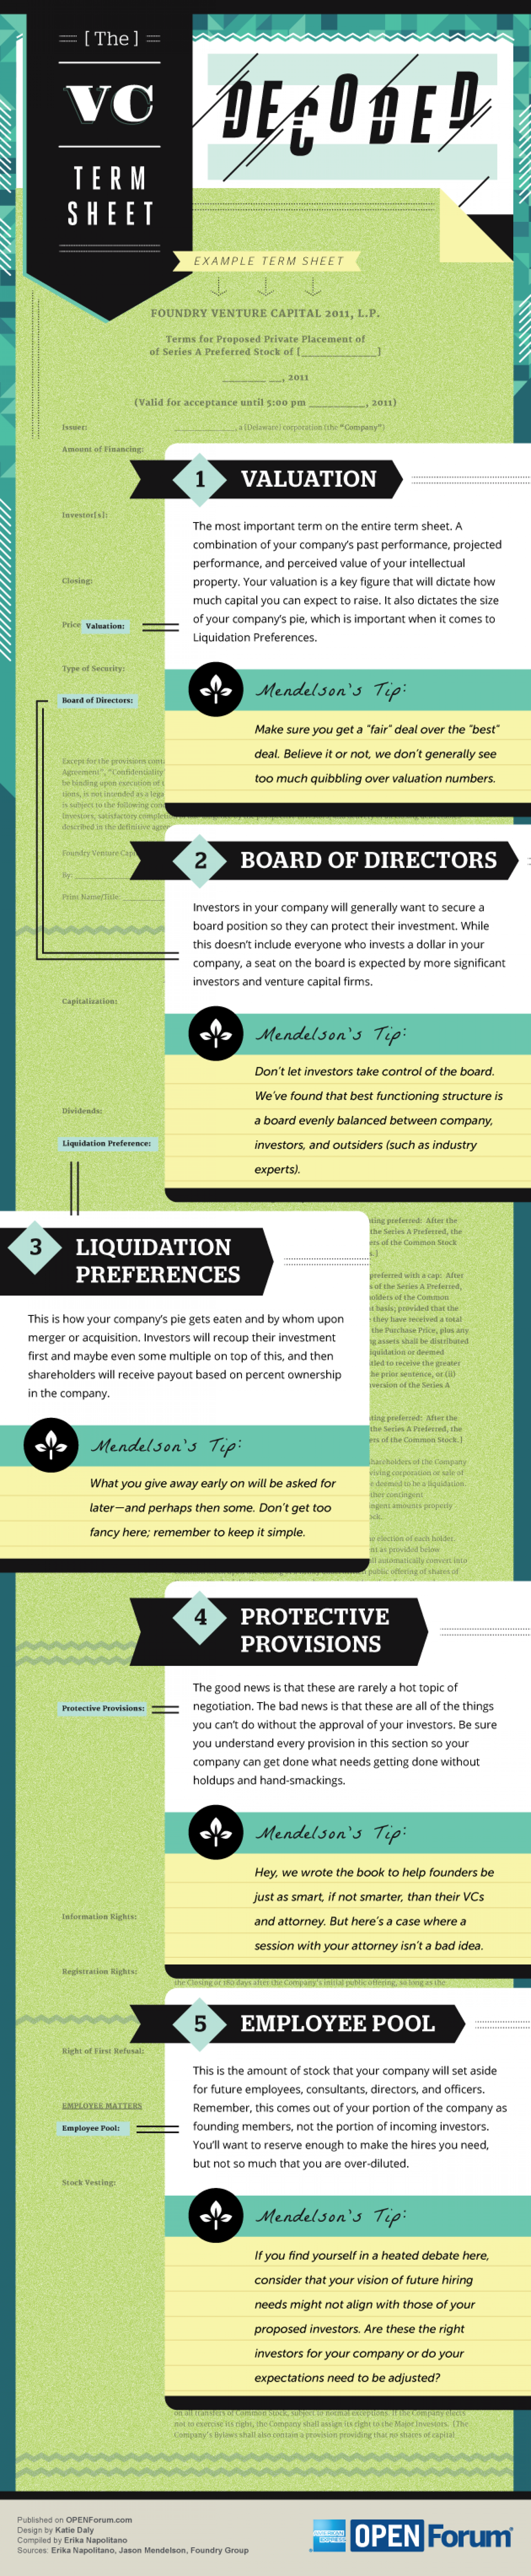 The VC Term Sheet Decoded Infographic